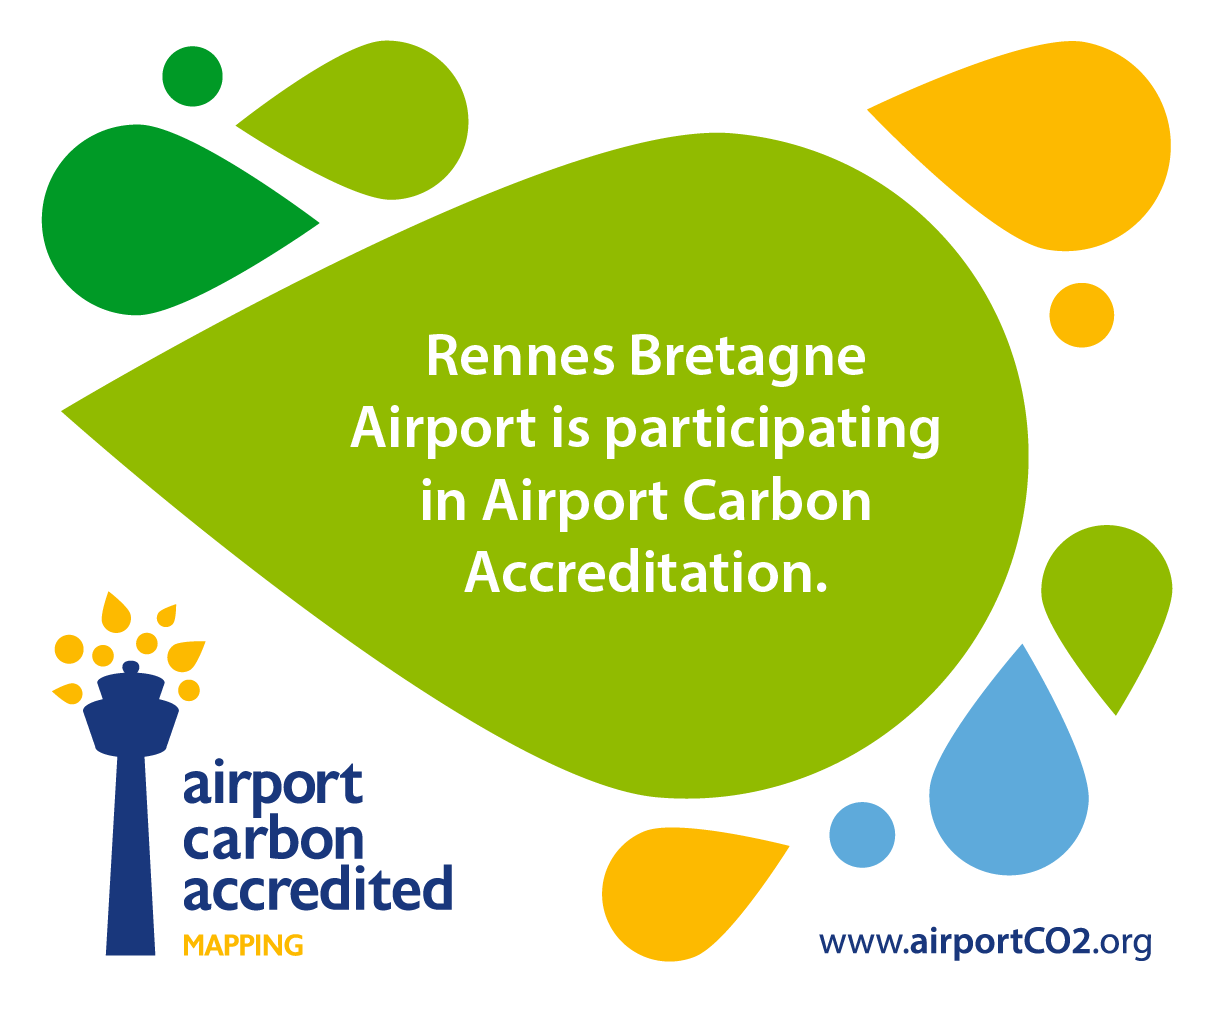 aca-airport-carbon-accreditation-rennes-airport